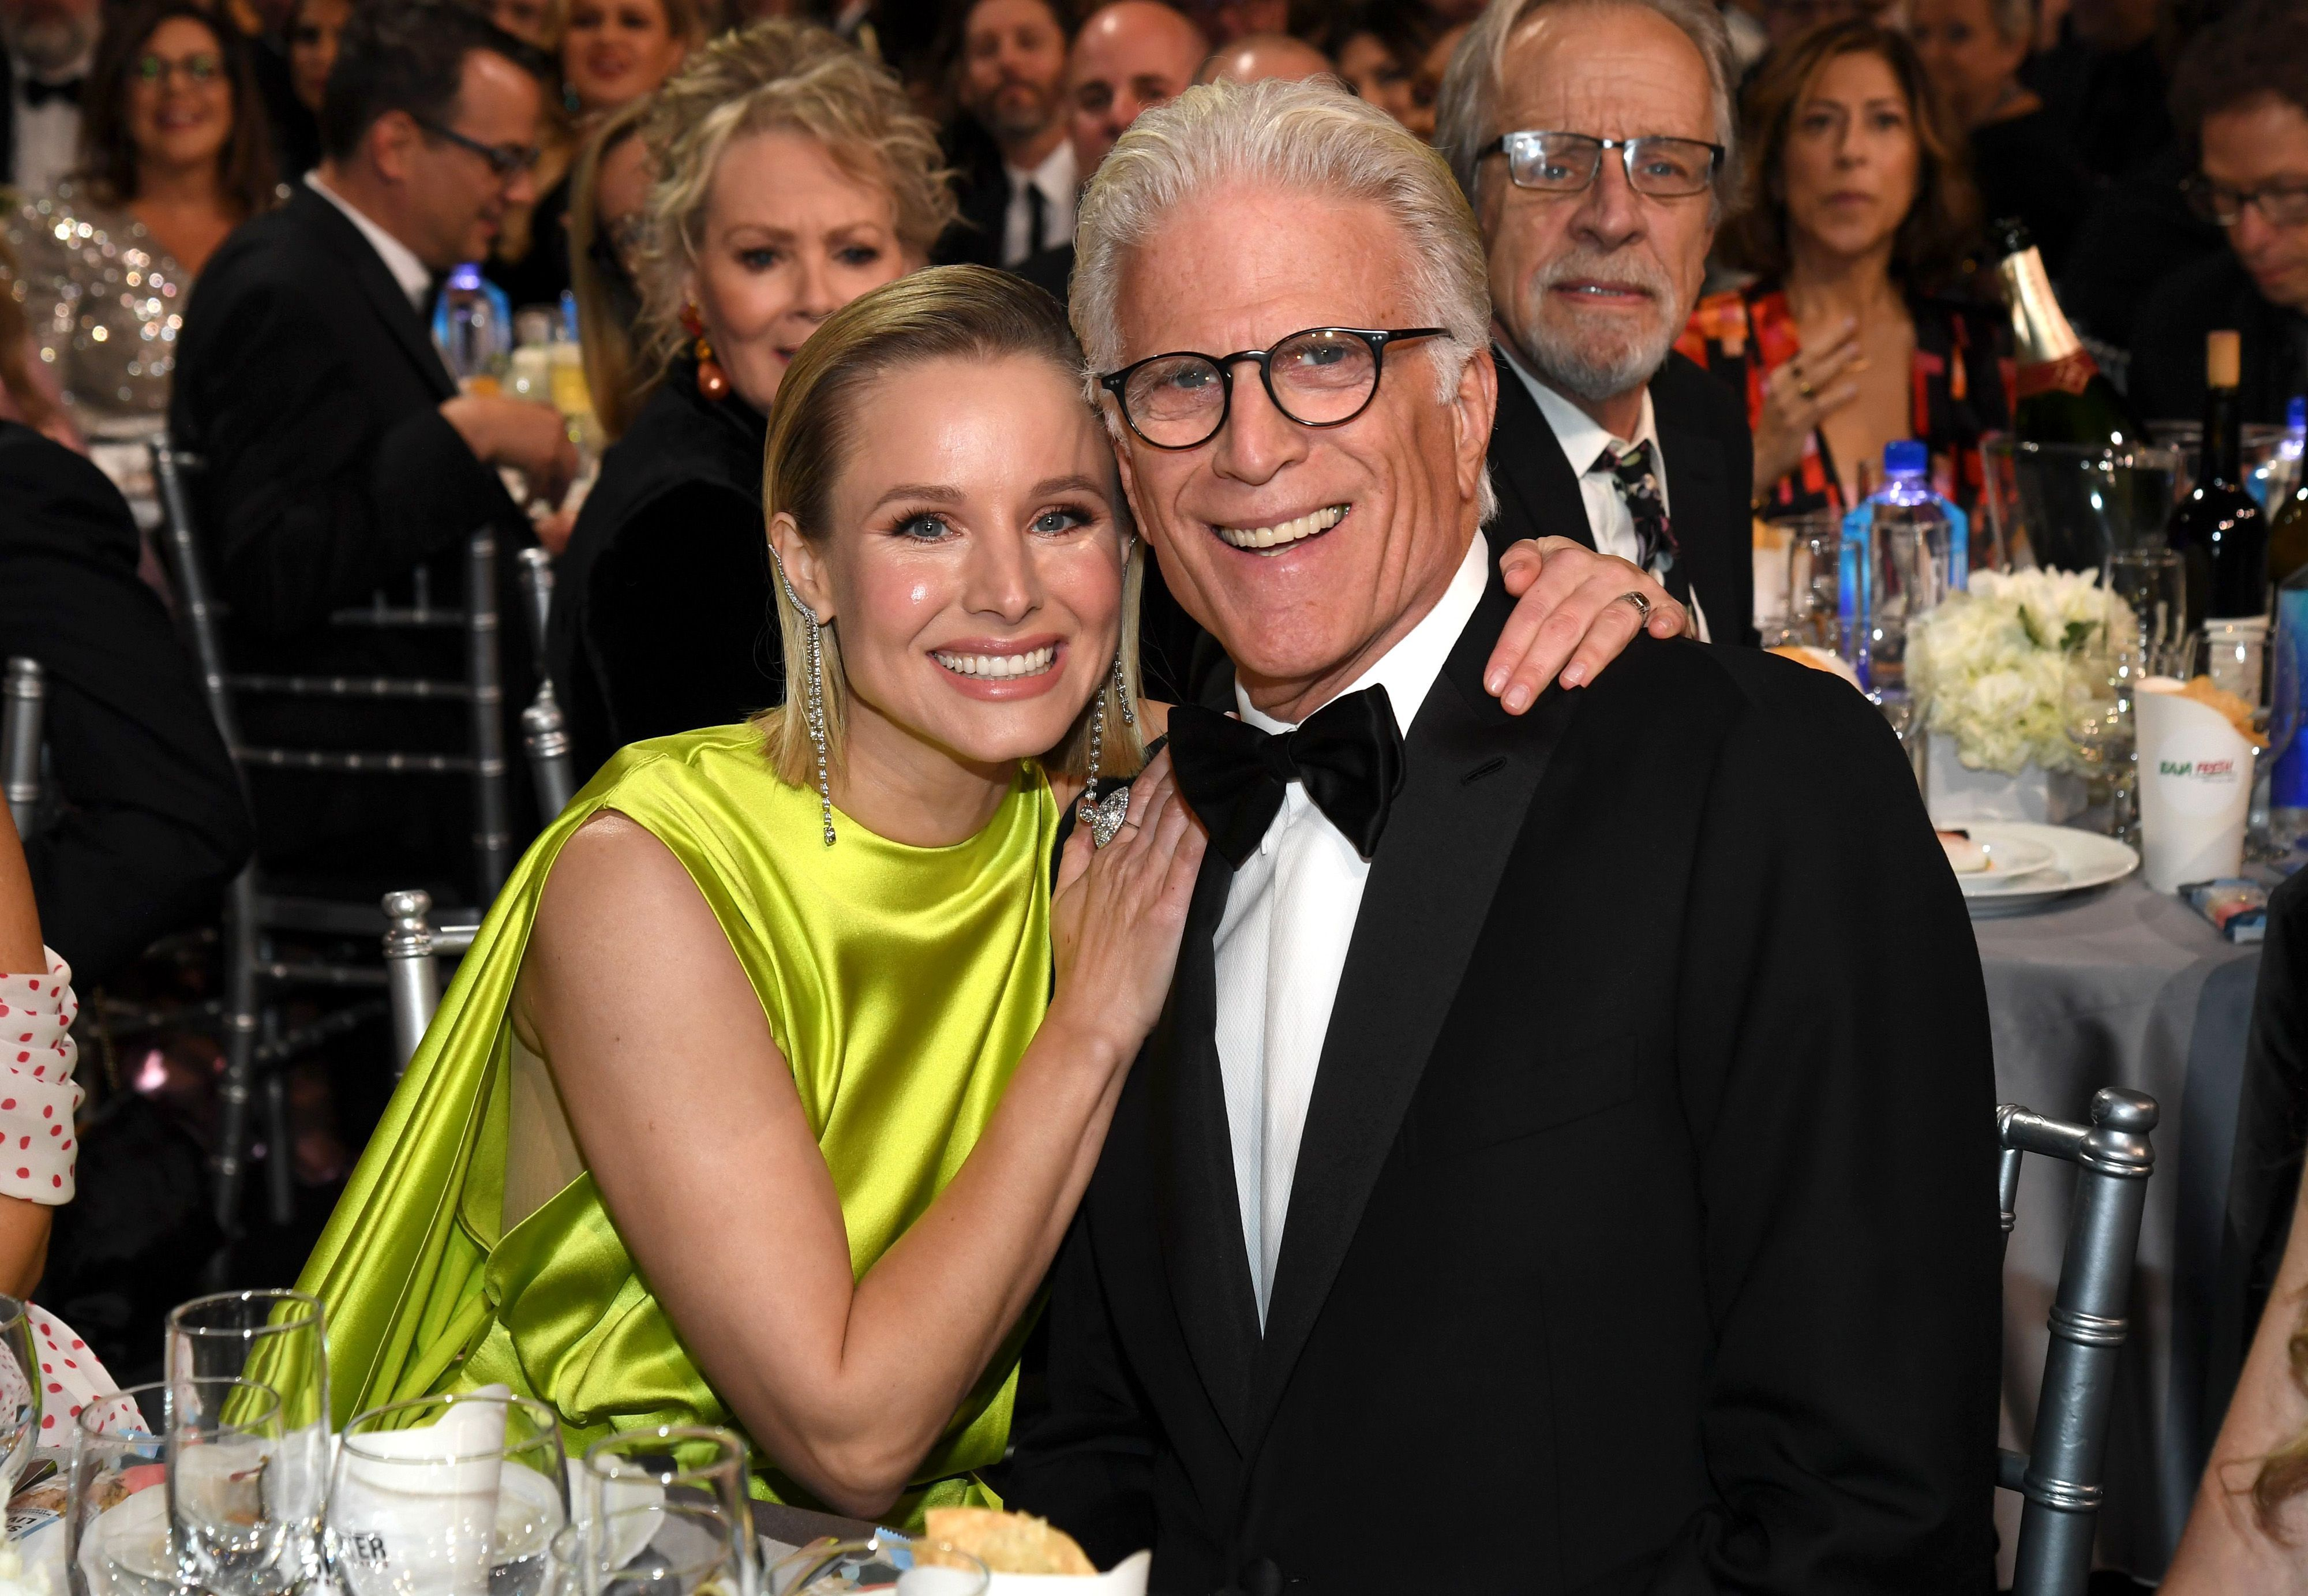 Ted Danson and Kristen Bell